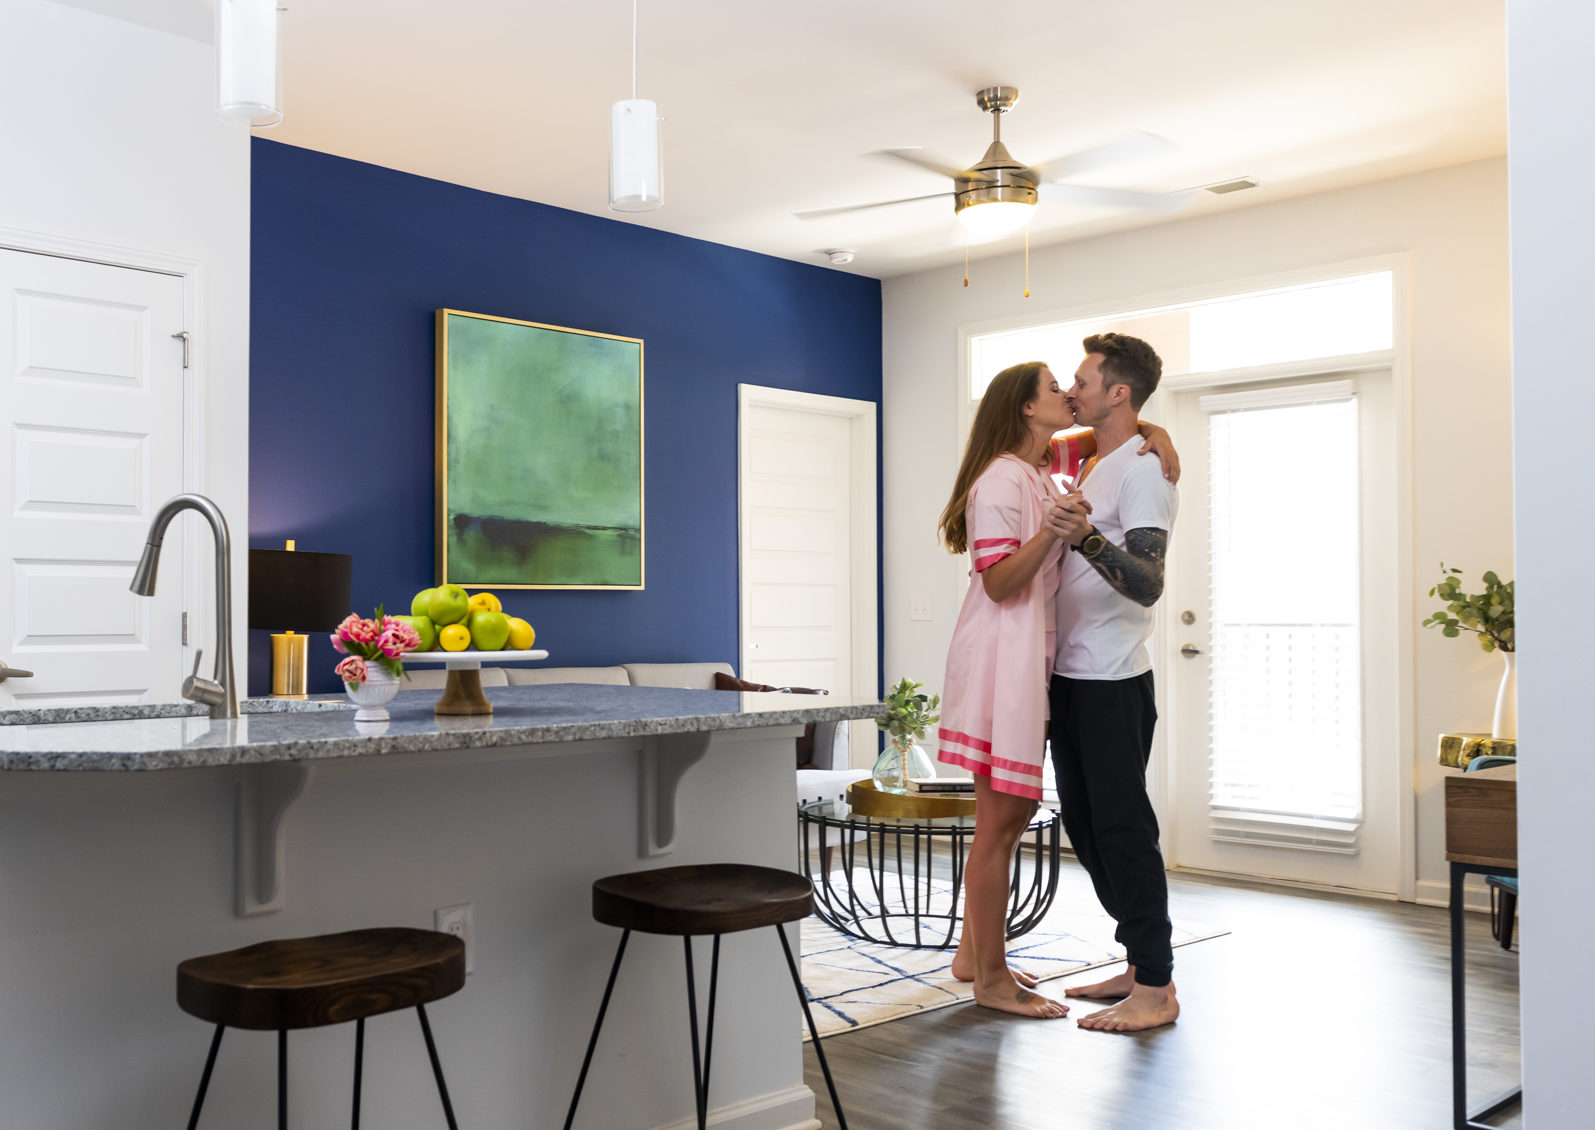 valentine's day gift ideas people dancing and kissing in living room evolve companies